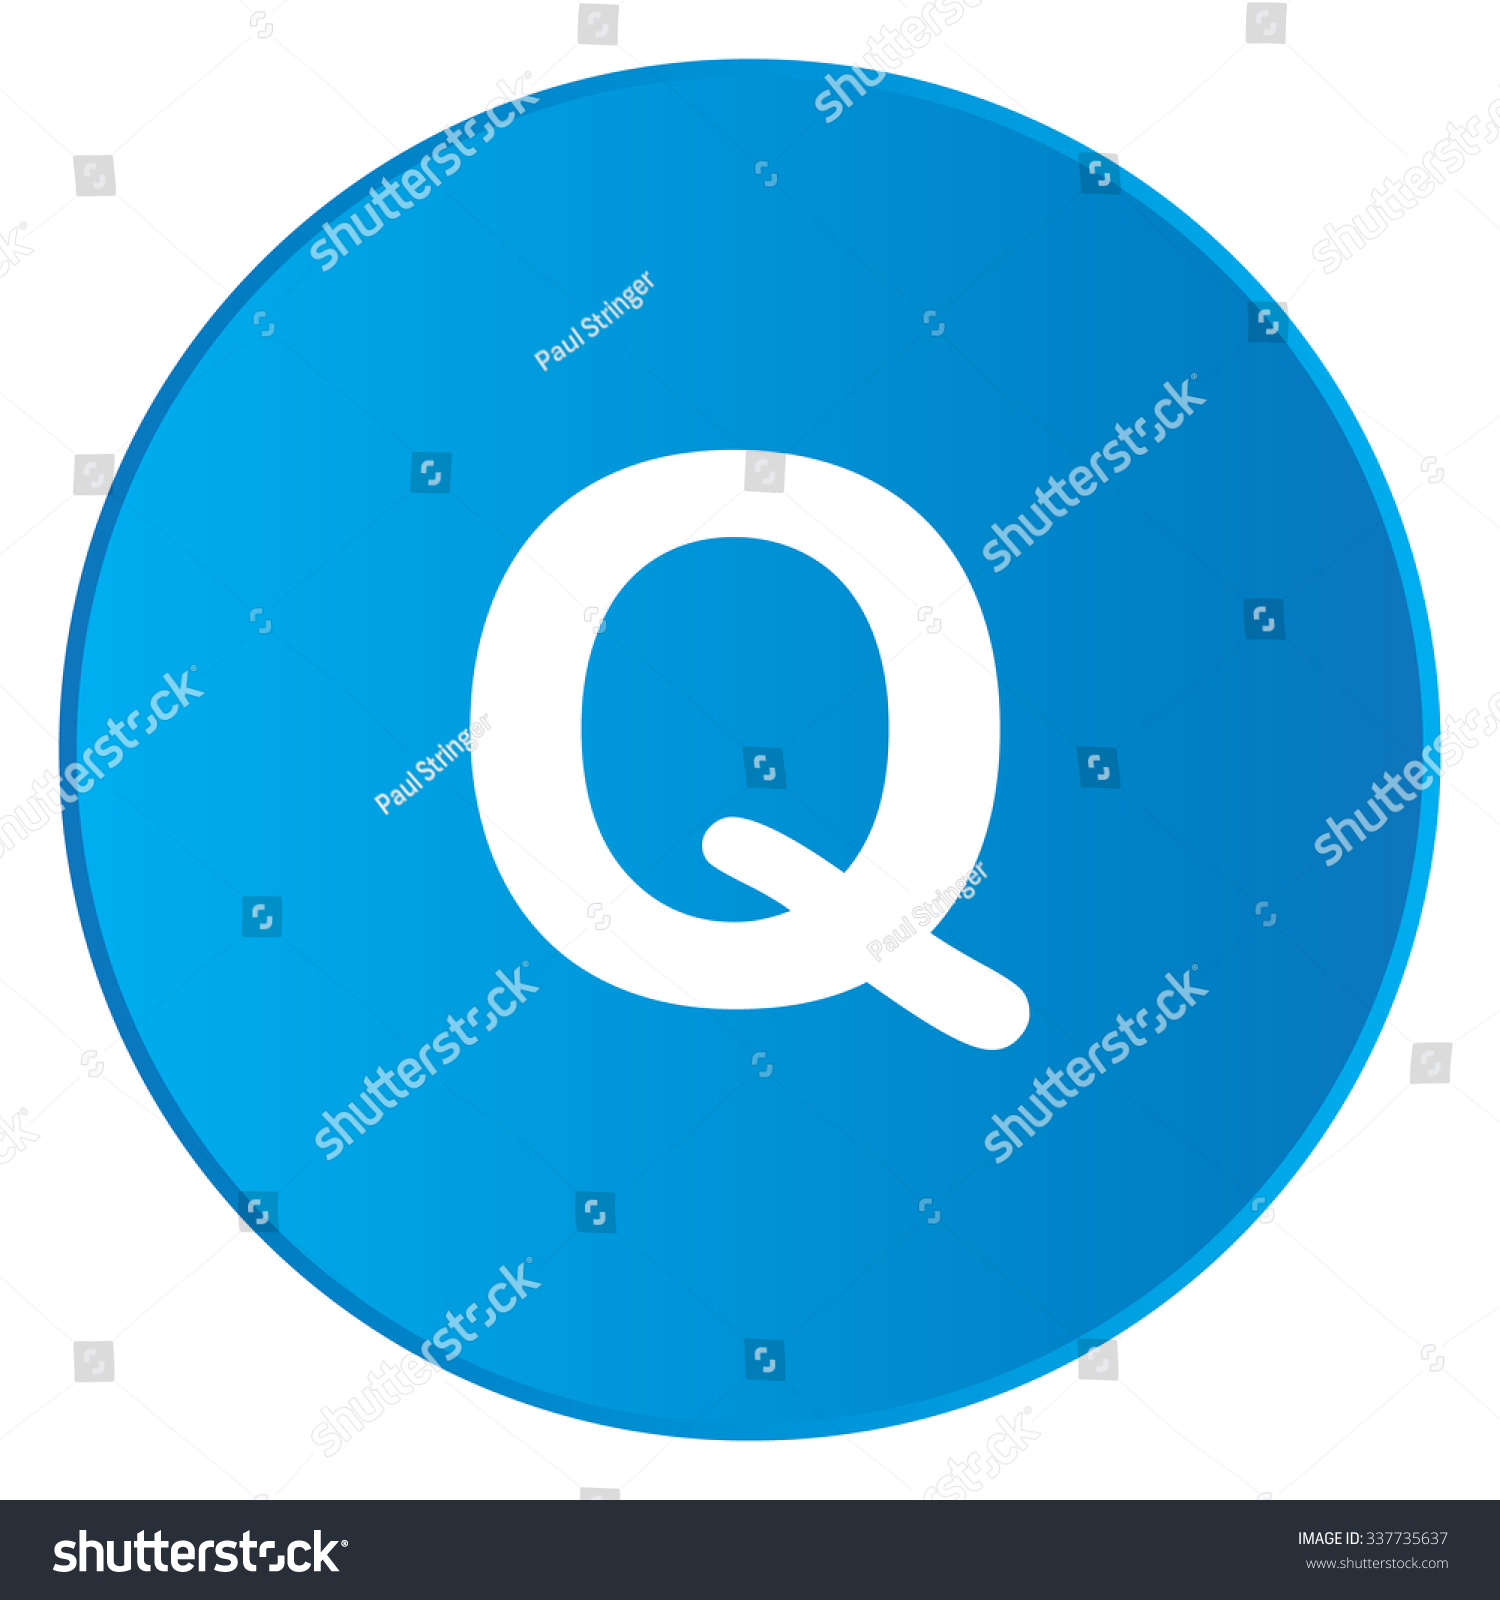 A White Icon Isolated on a Blue Button - Q